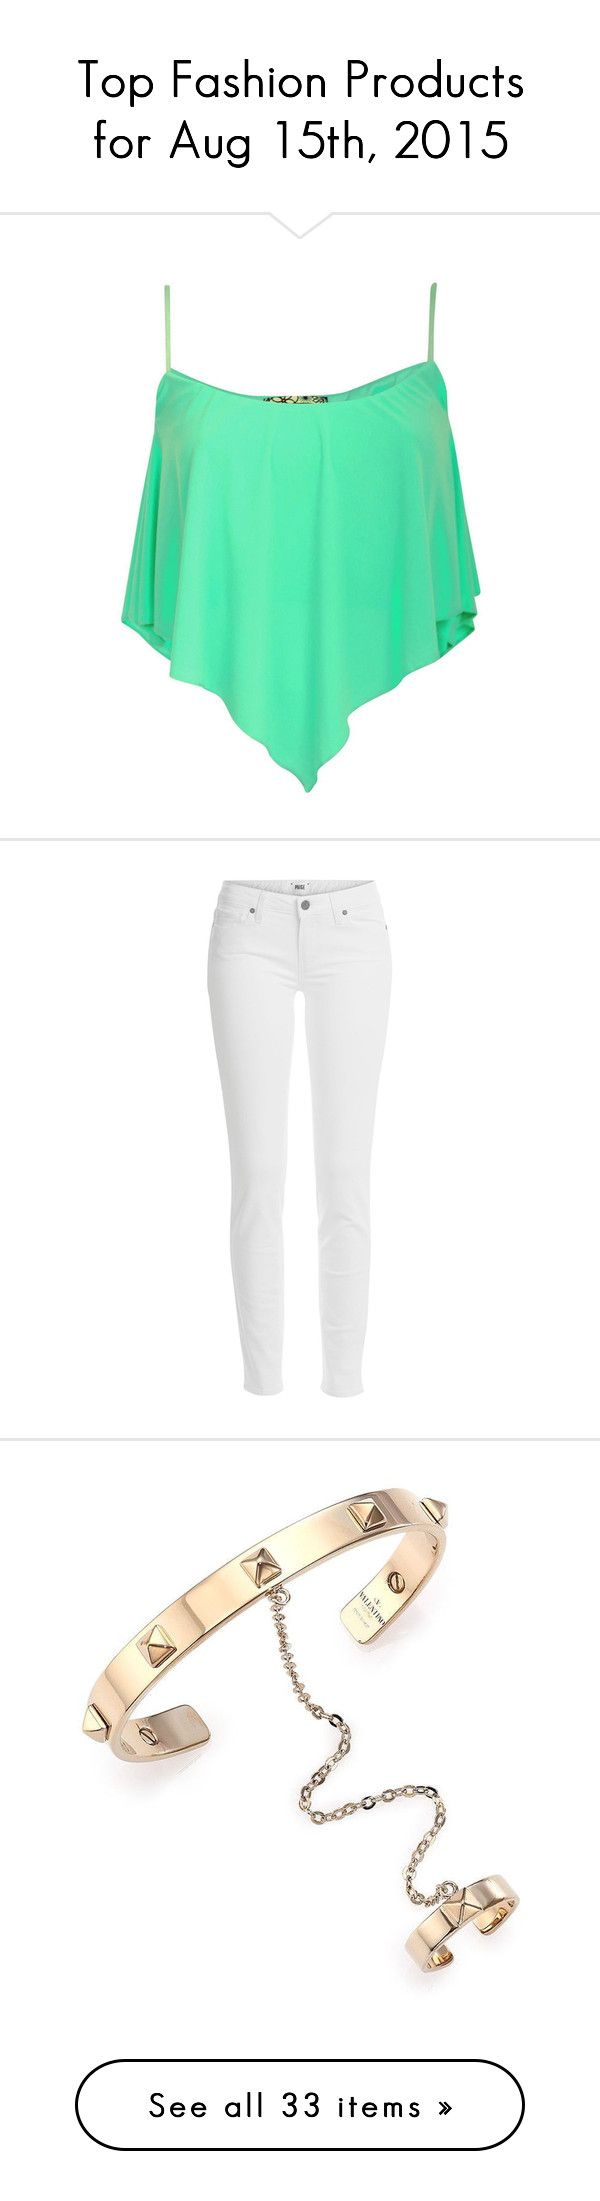 """""""Top Fashion Products for Aug 15th, 2015"""" by polyvore ❤ liked on Polyvore featuring tops, shirts, crop tops, tank tops, mint green shirt, cropped cami, shirt crop top, green shirt, mint crop top and bags"""